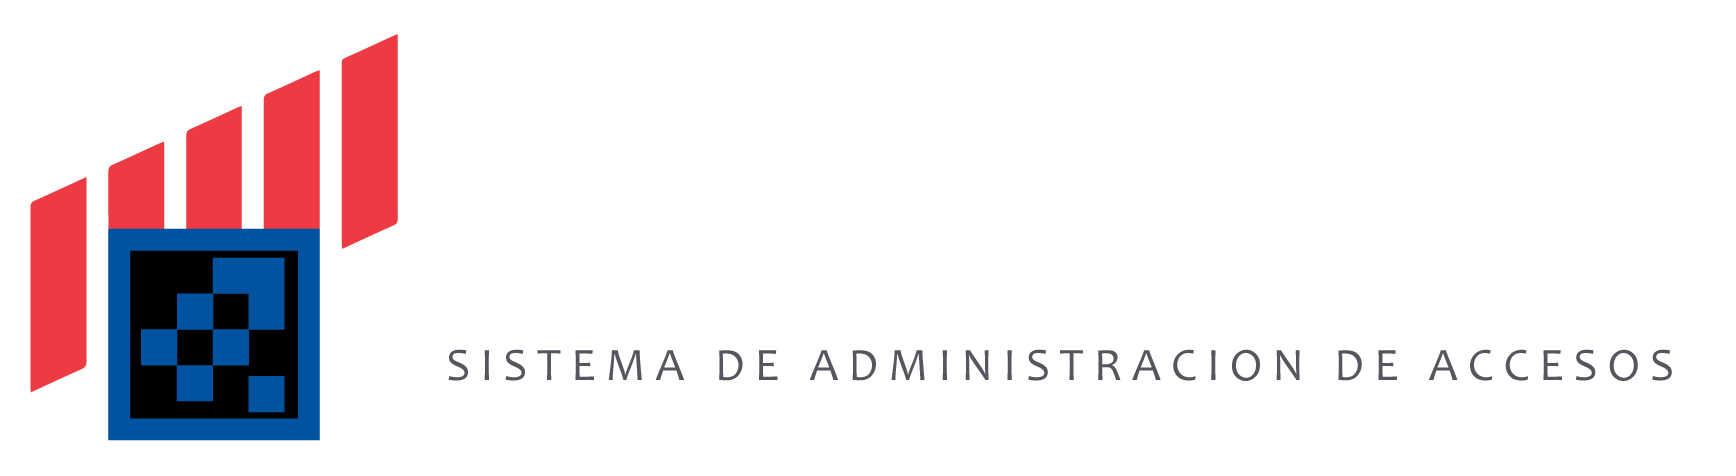 quickaccess_logo